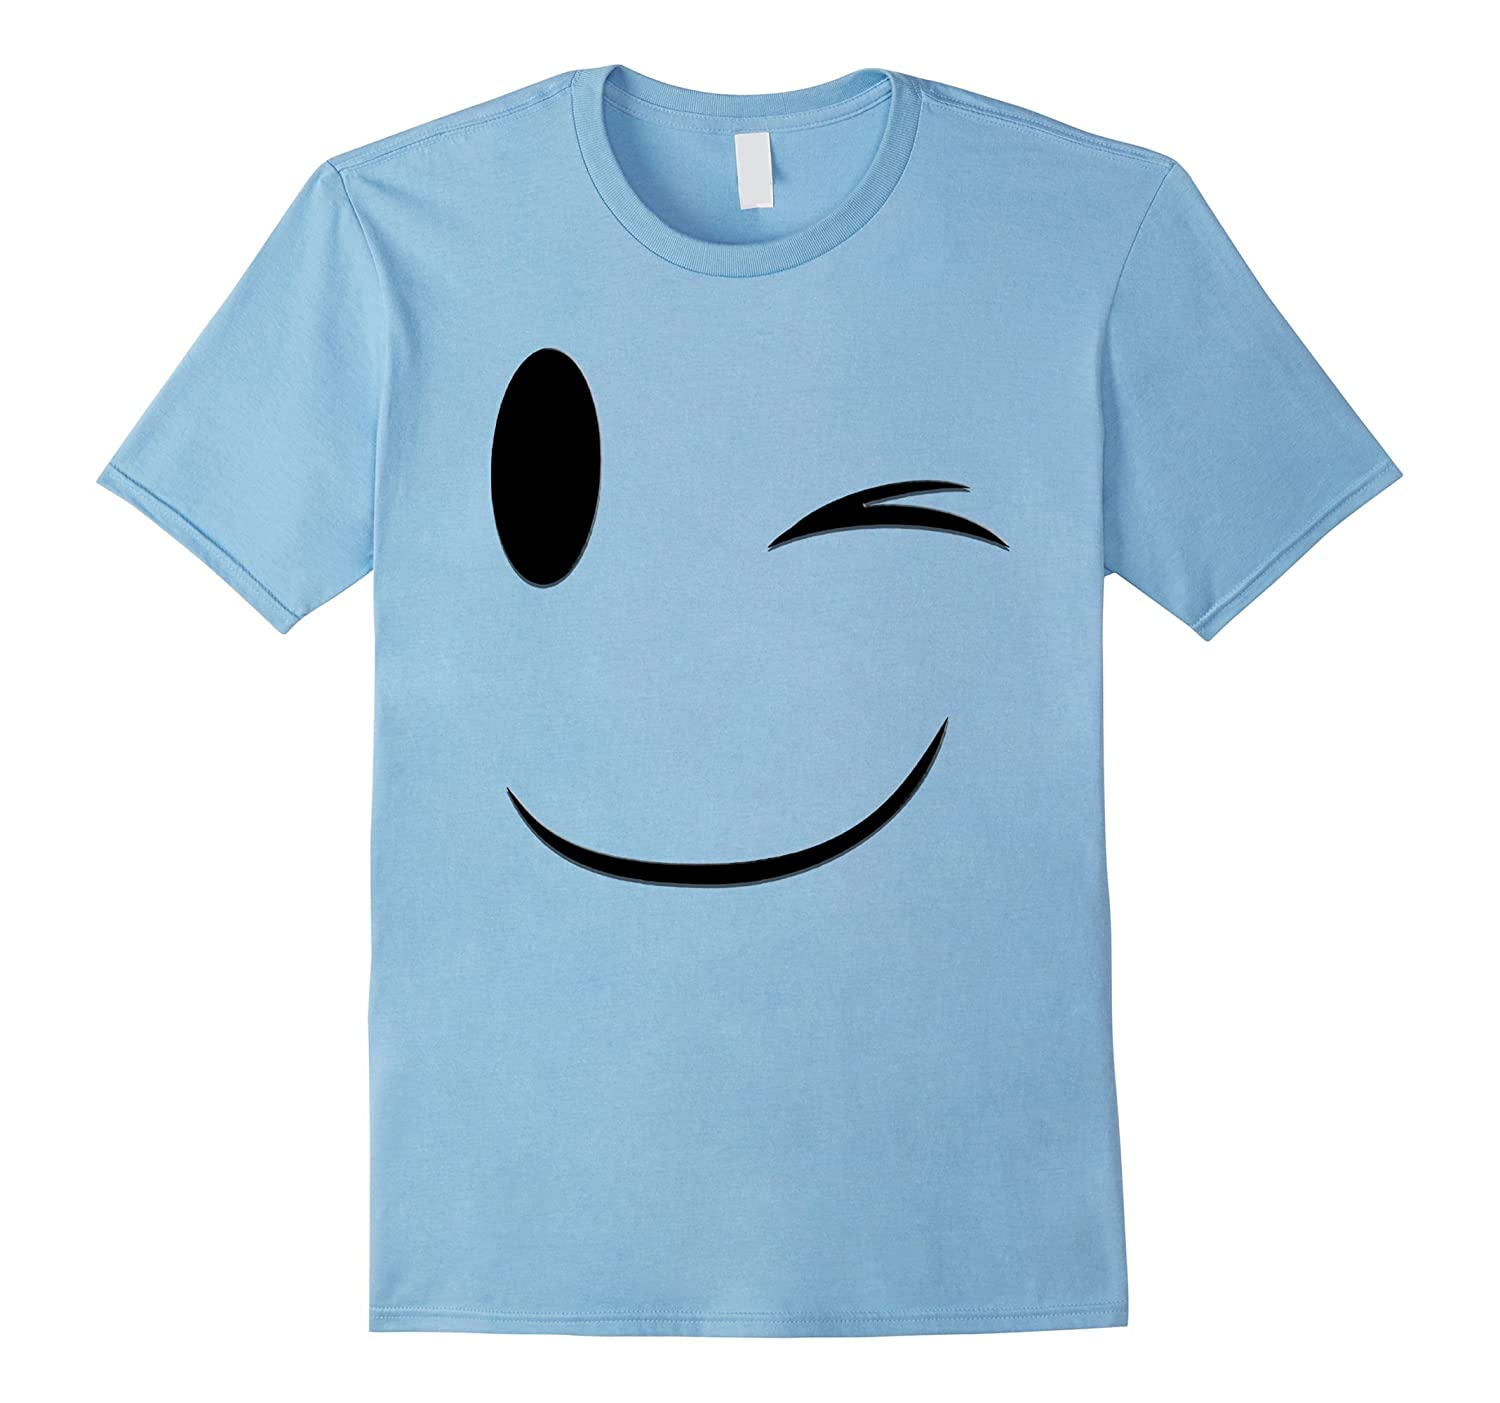 expression emoji smiley face emoticon t shirt goatstee. Black Bedroom Furniture Sets. Home Design Ideas